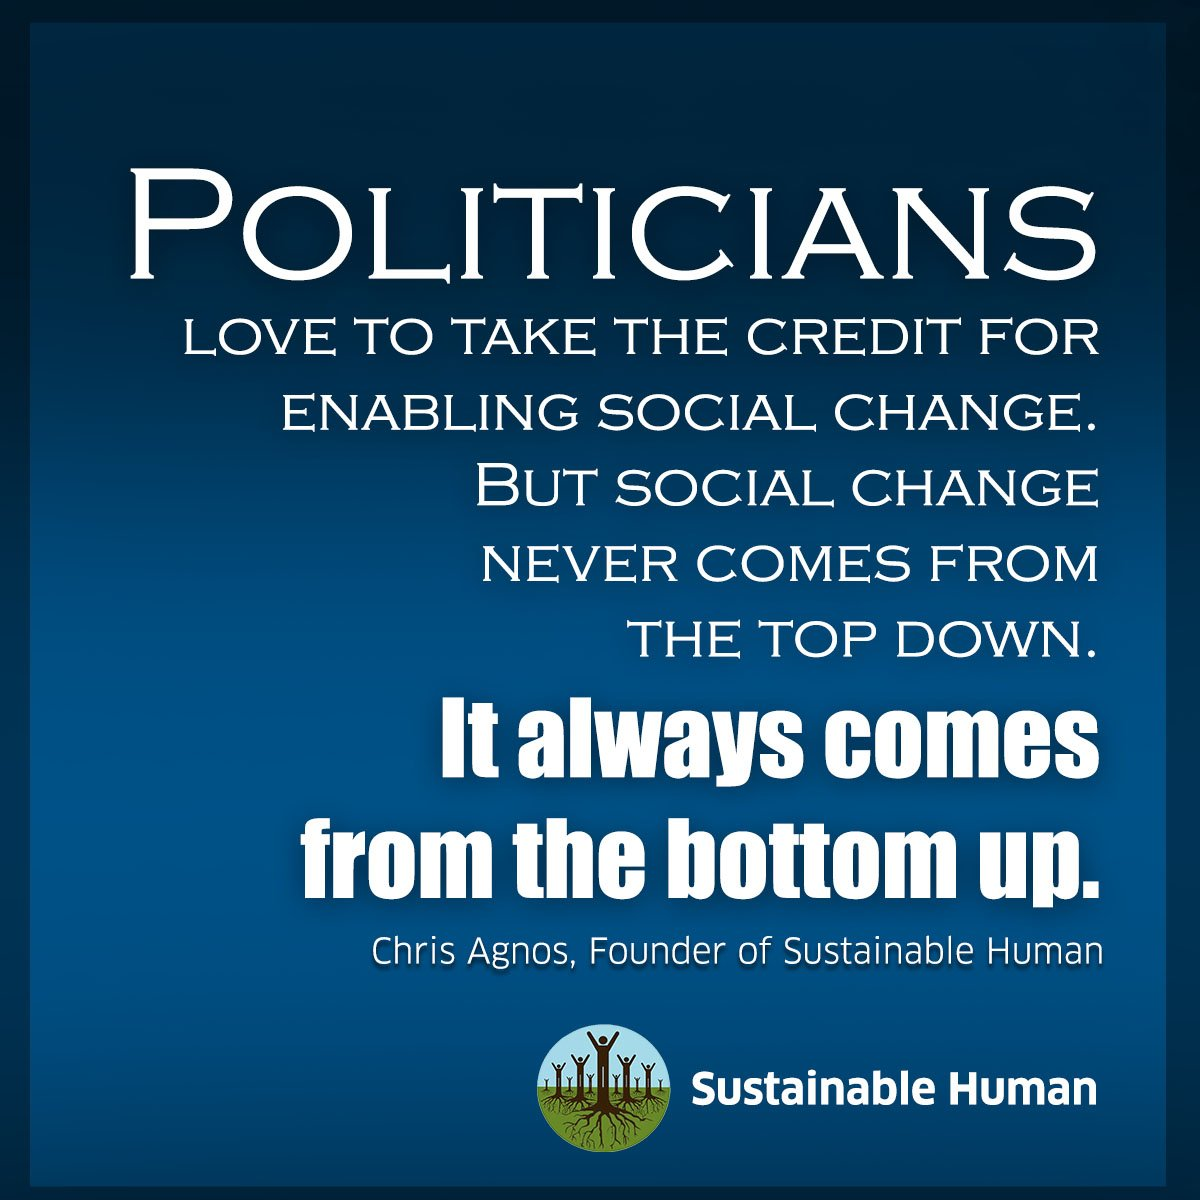 The more people believe that something is possible, the less resistance there will be. #ParadigmShift #PowerOfUnity <br>http://pic.twitter.com/F6cF04c9Ma